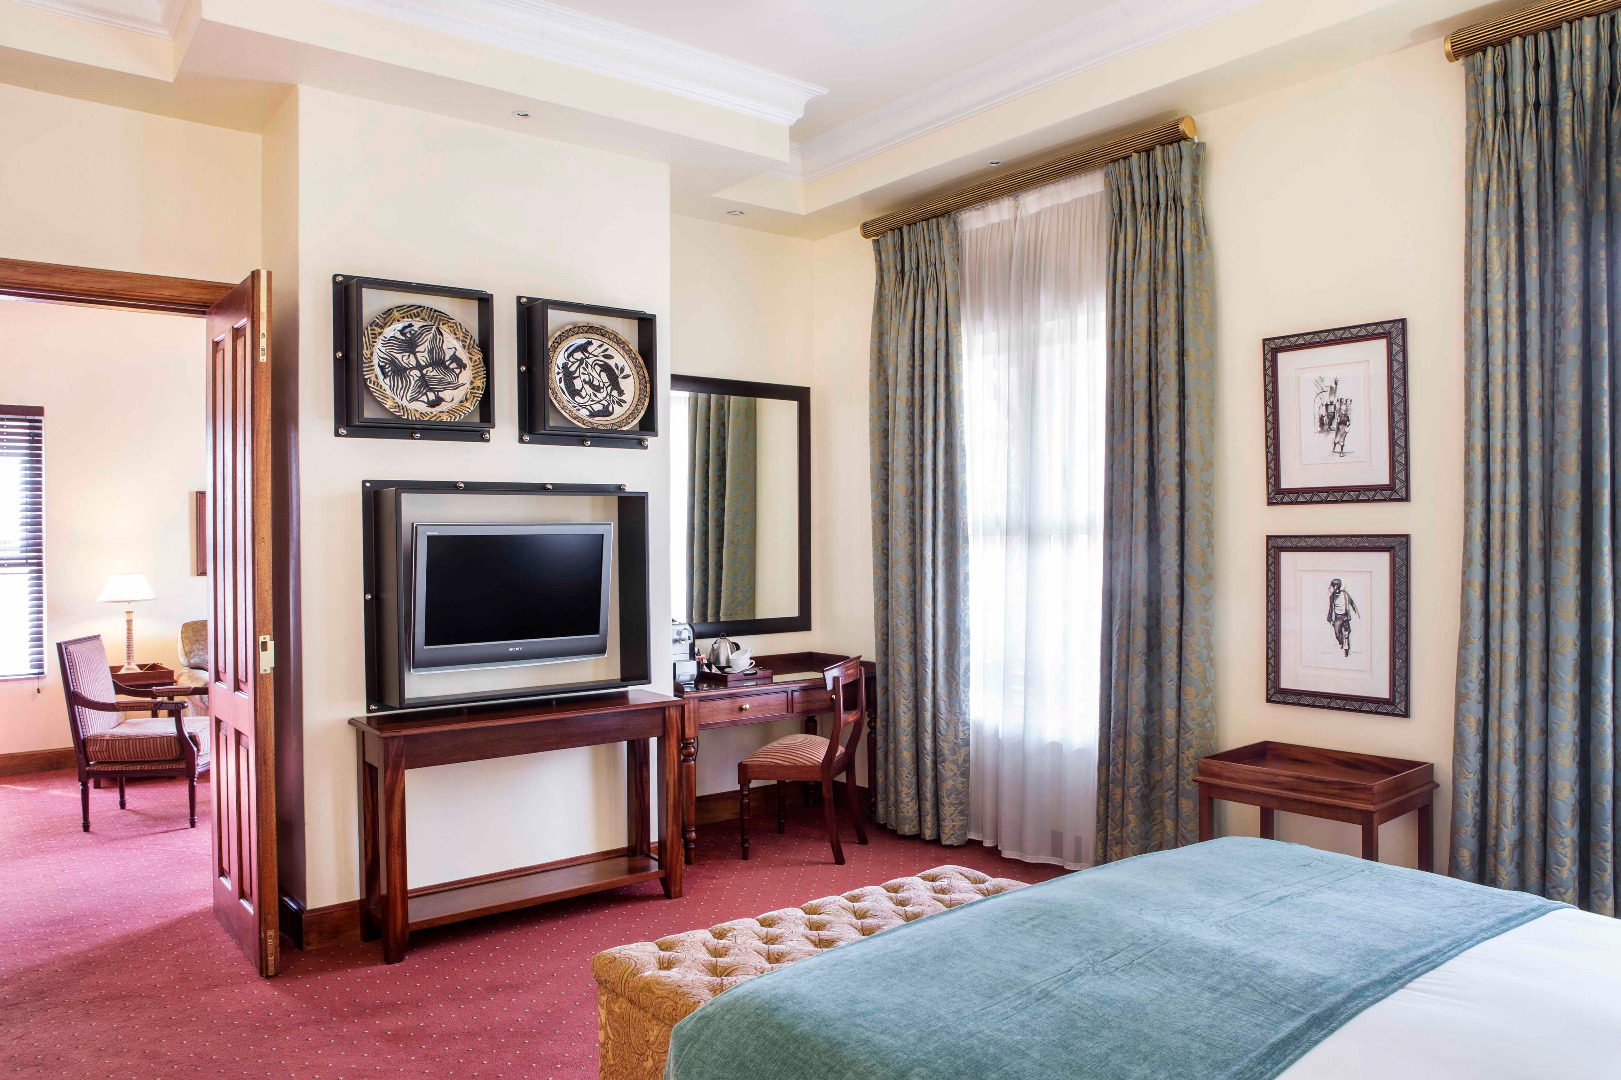 Faircity Quatermain Hotel, City of Johannesburg